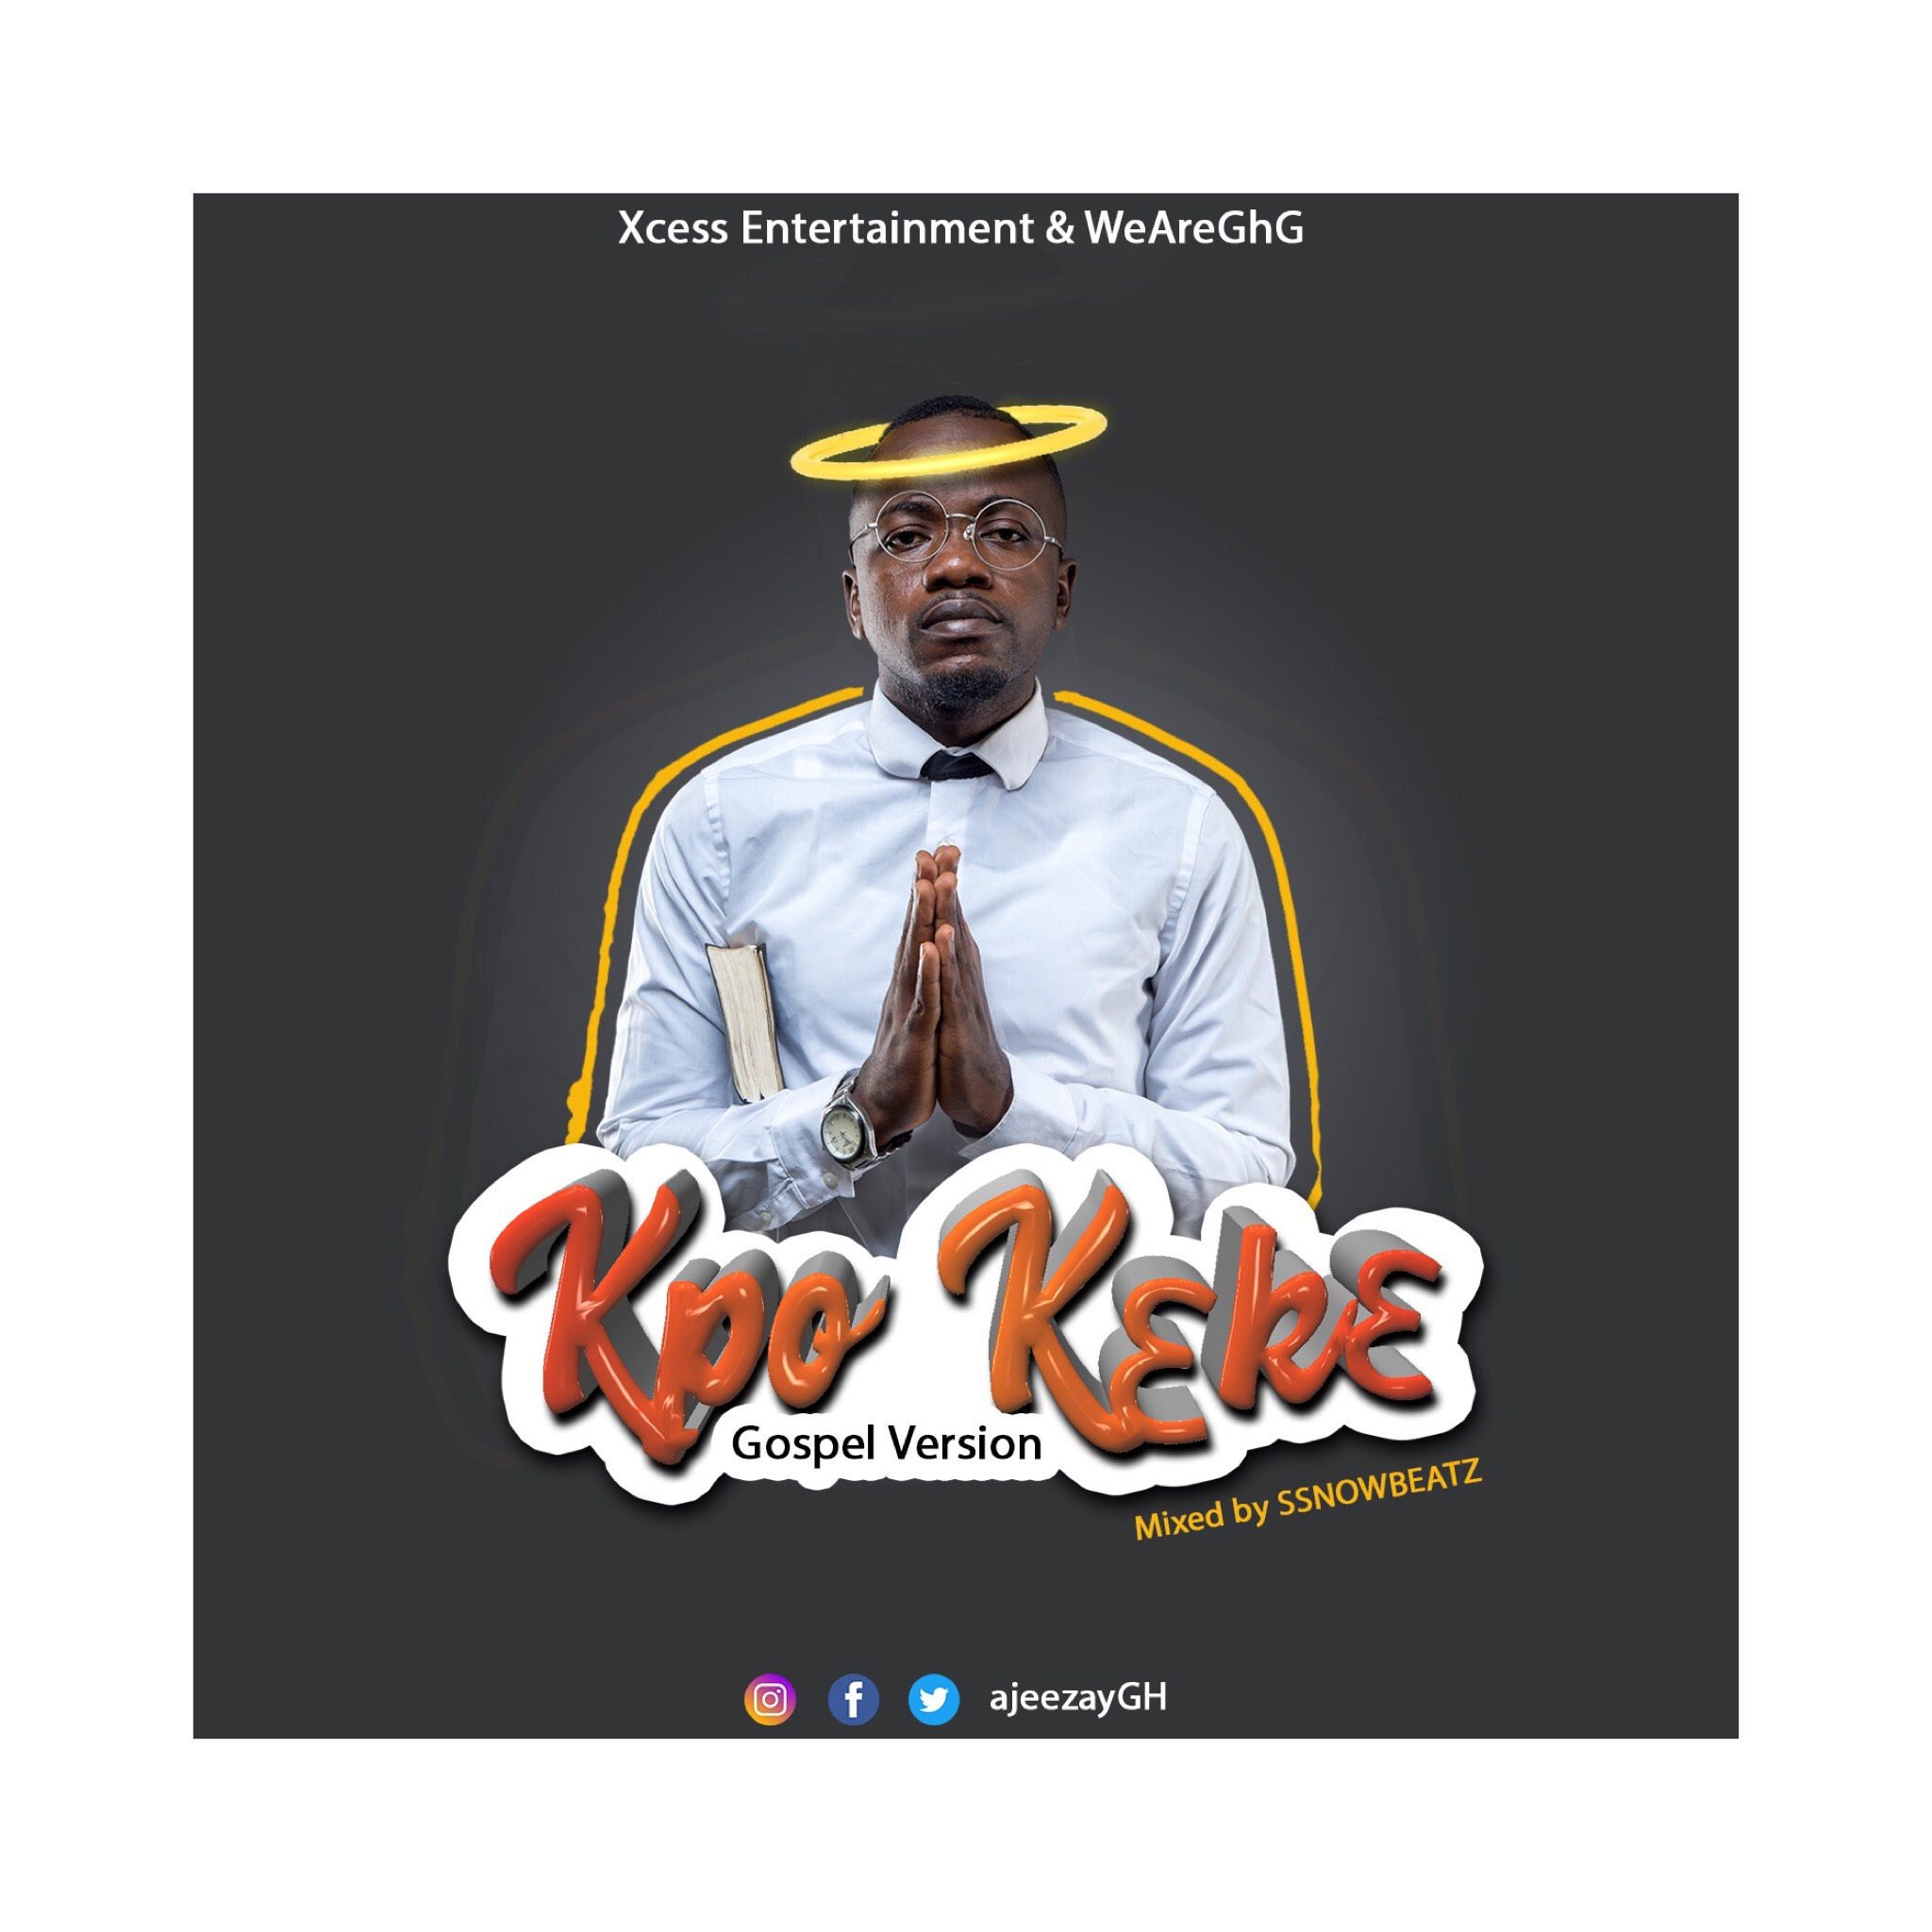 Ajeezay – Kpoo K3k3 (Gospel Version)